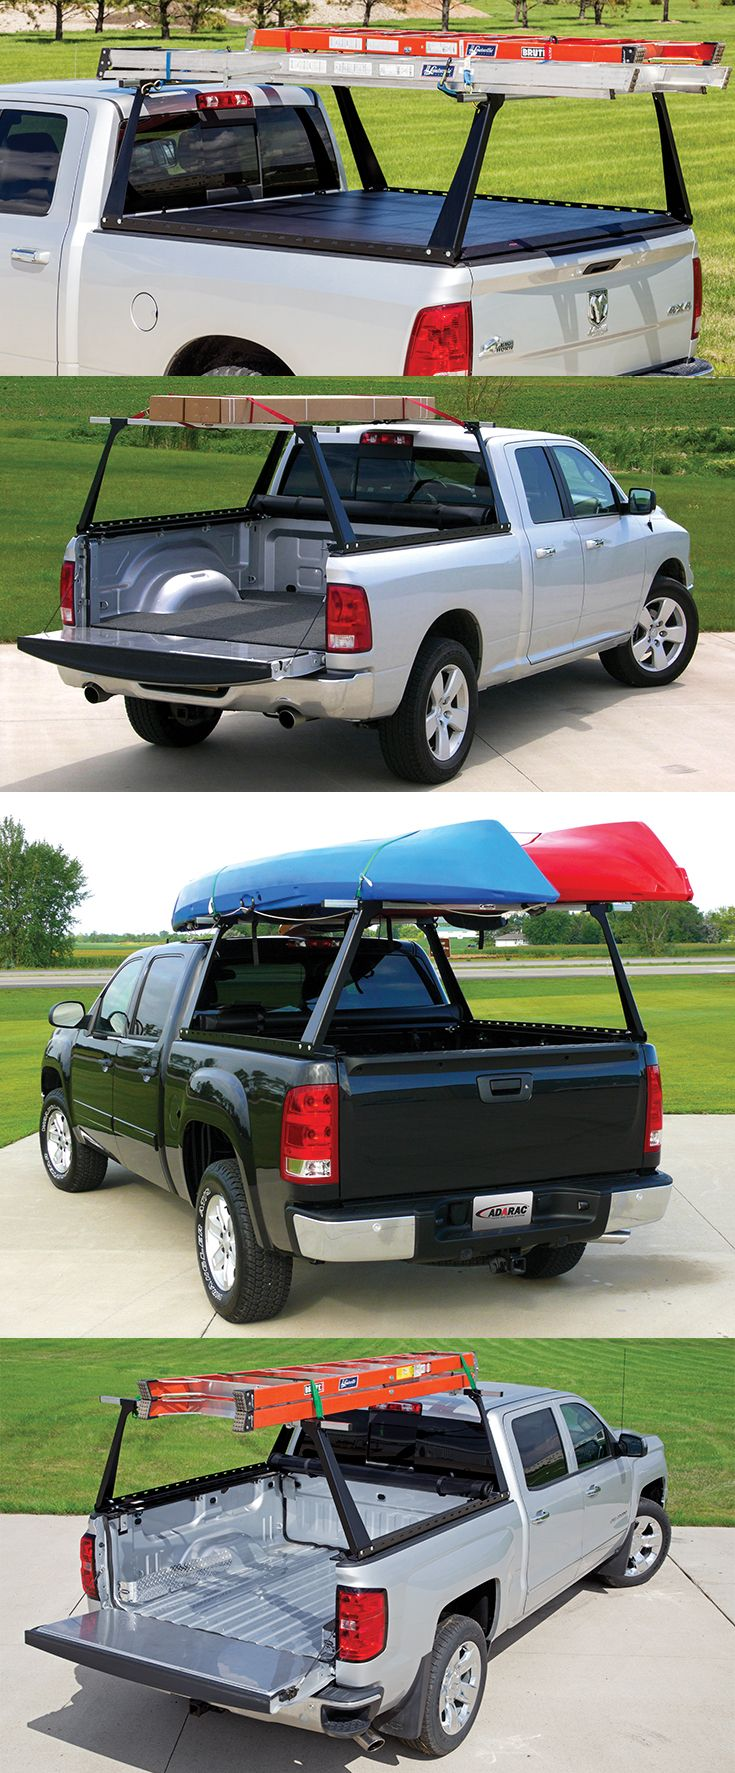 The ADARAC™ Truck Bed Rack System is an adjustable and sturdy rack system, compatible with ACCESS® Brand tonneau covers and other inside-the-rail tonneau covers. It sits neatly behind the cab with no obstruction of view, and is capable of carrying a 500-pound load.